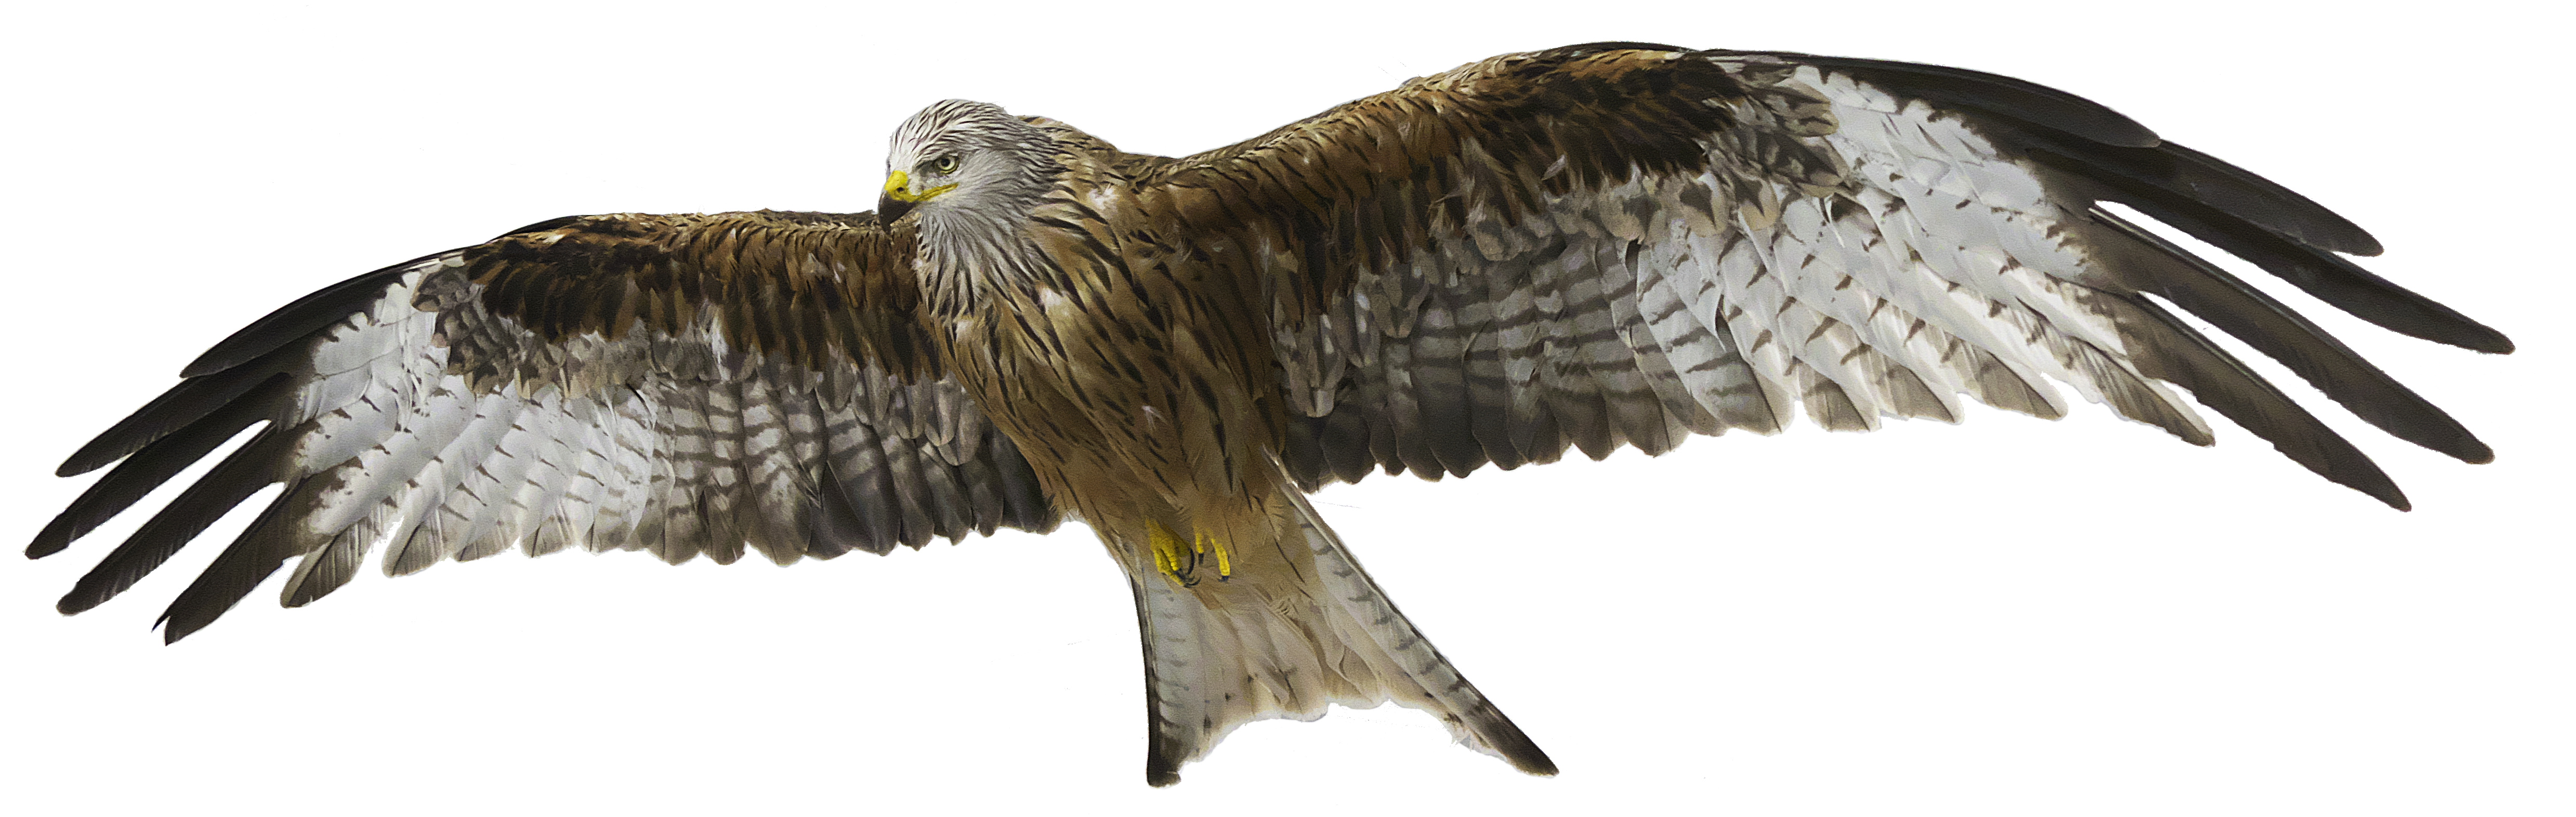 2red-kite-3070295png